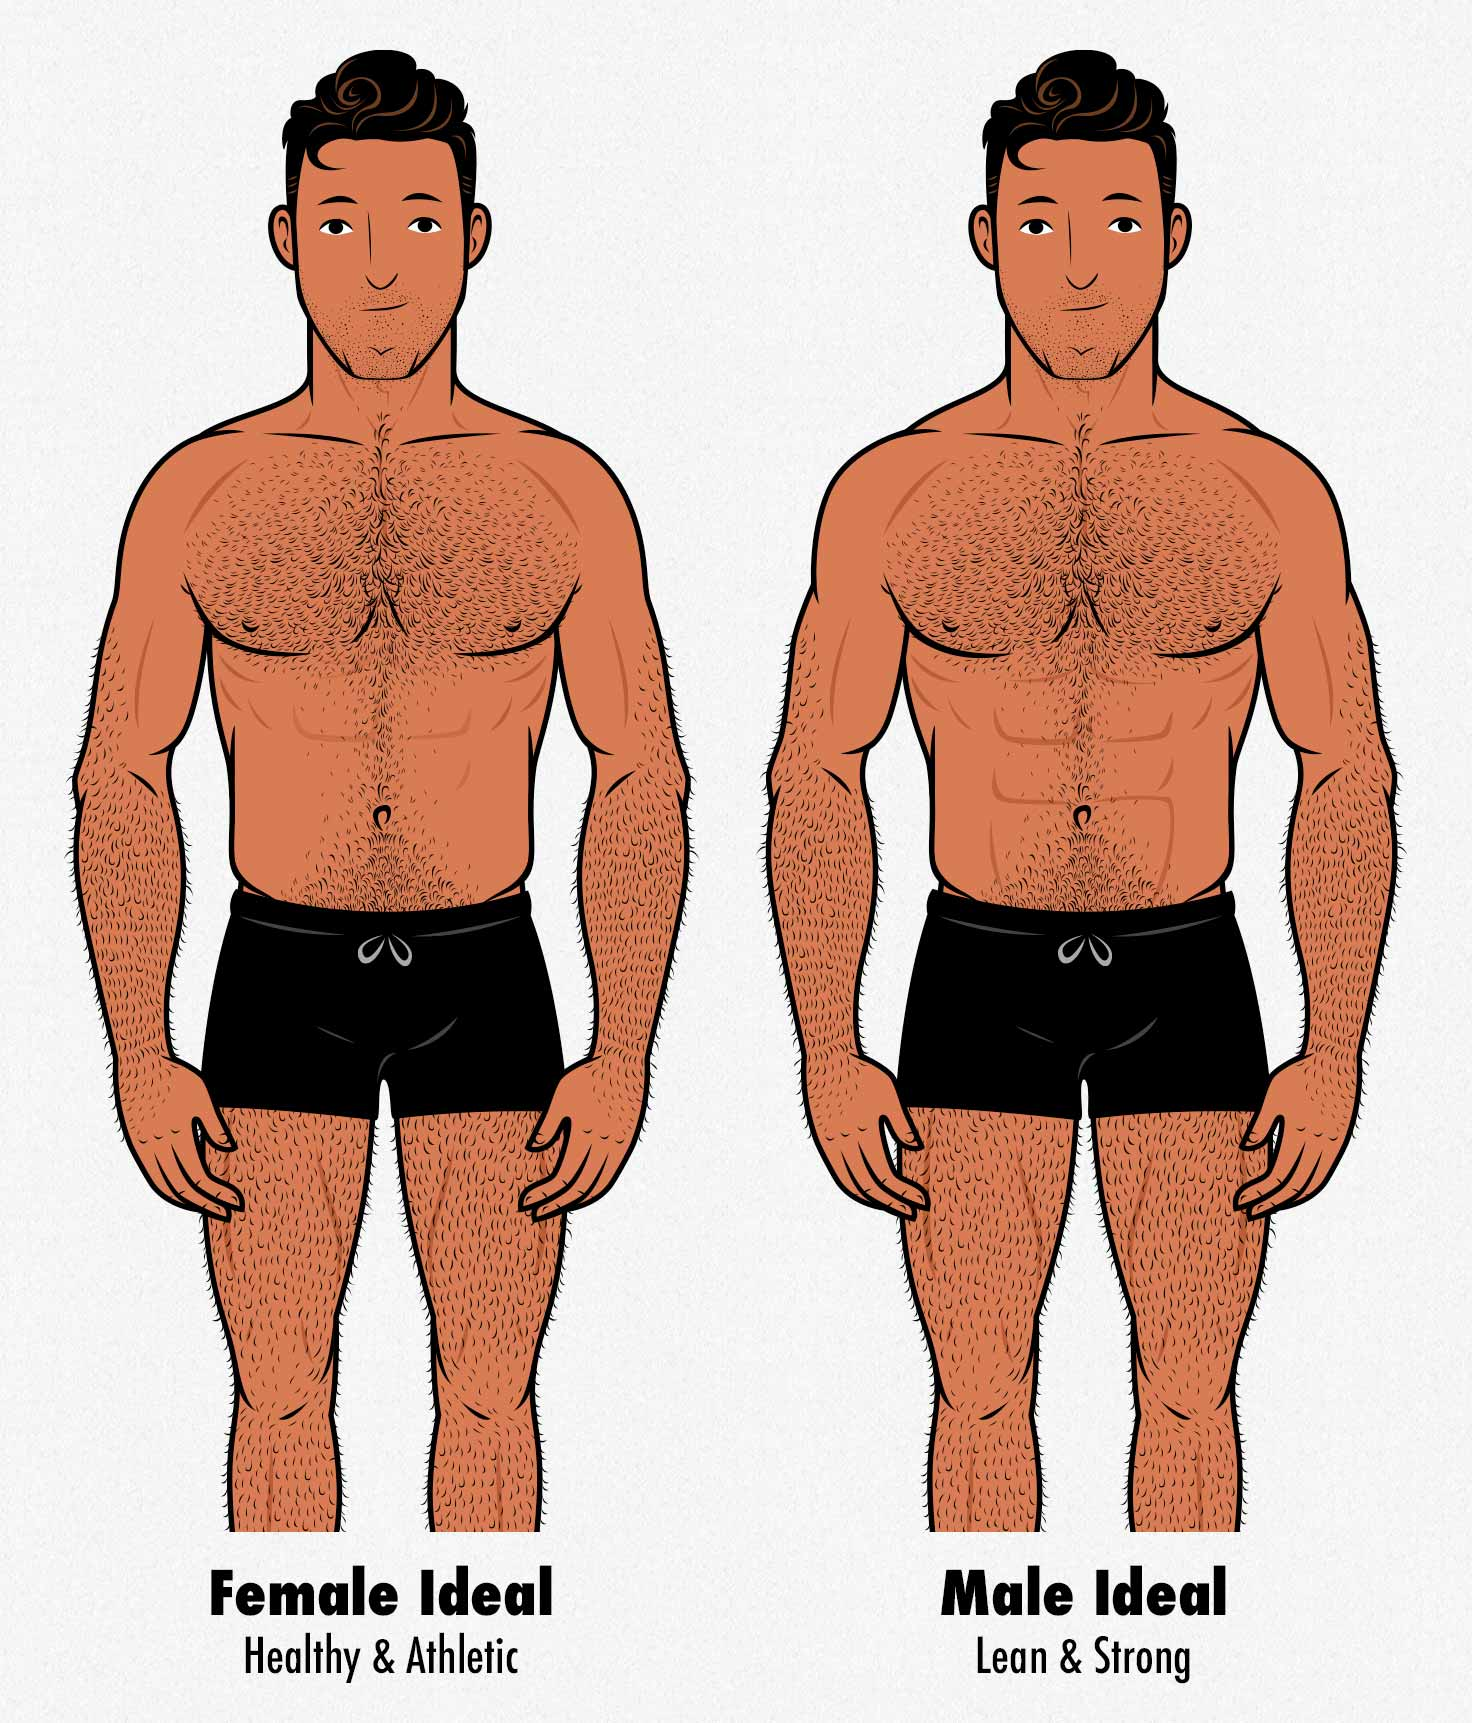 Illustration showing the bodies rated as most attractive by women and ideal by men.